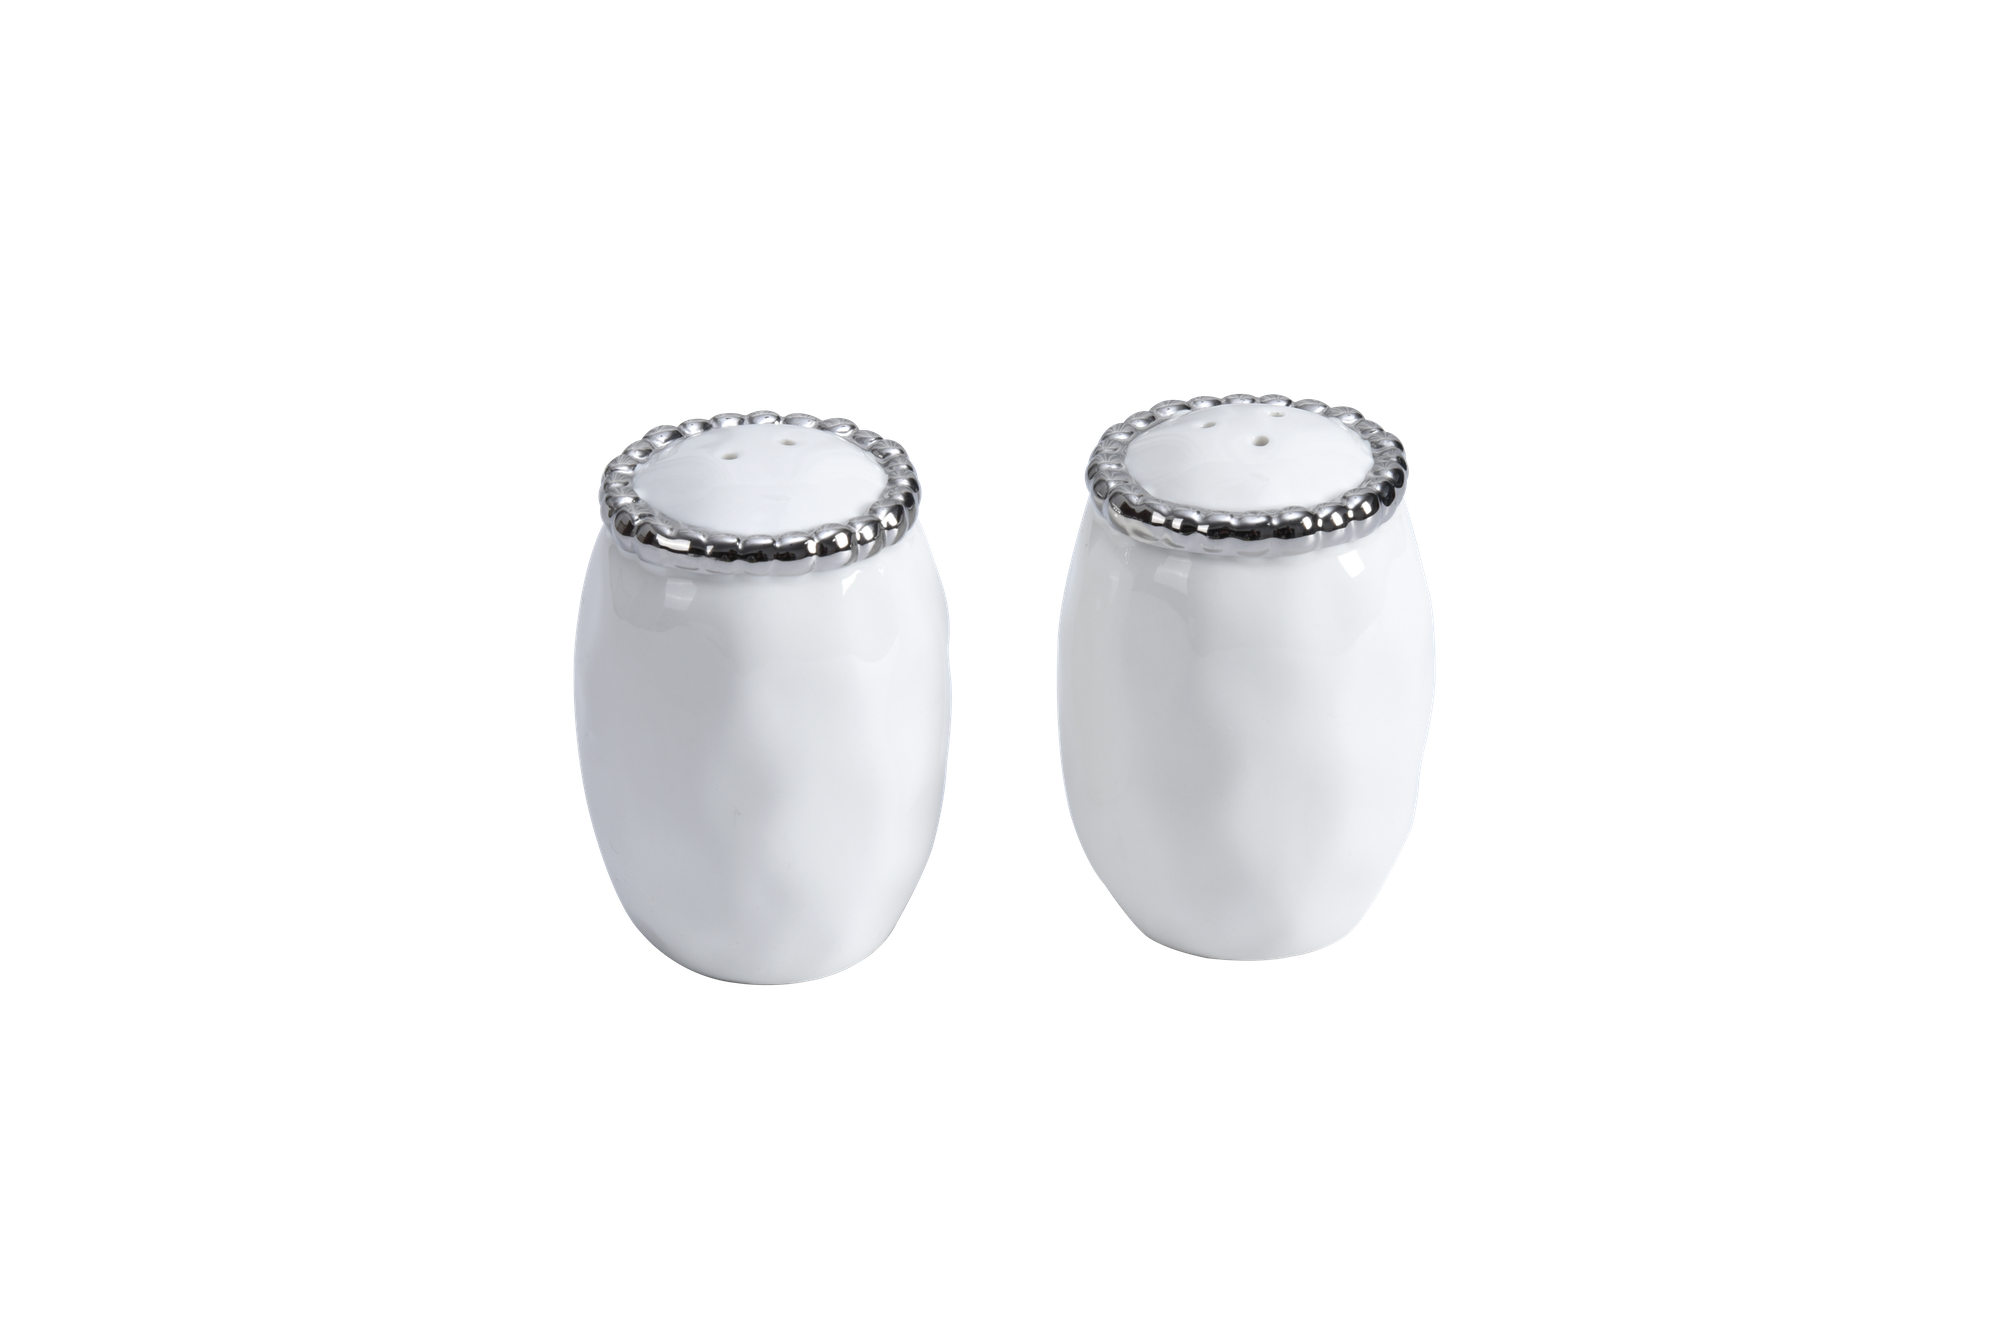 Beaded Ceramic White Salt Pepper Shaker Timeless Table